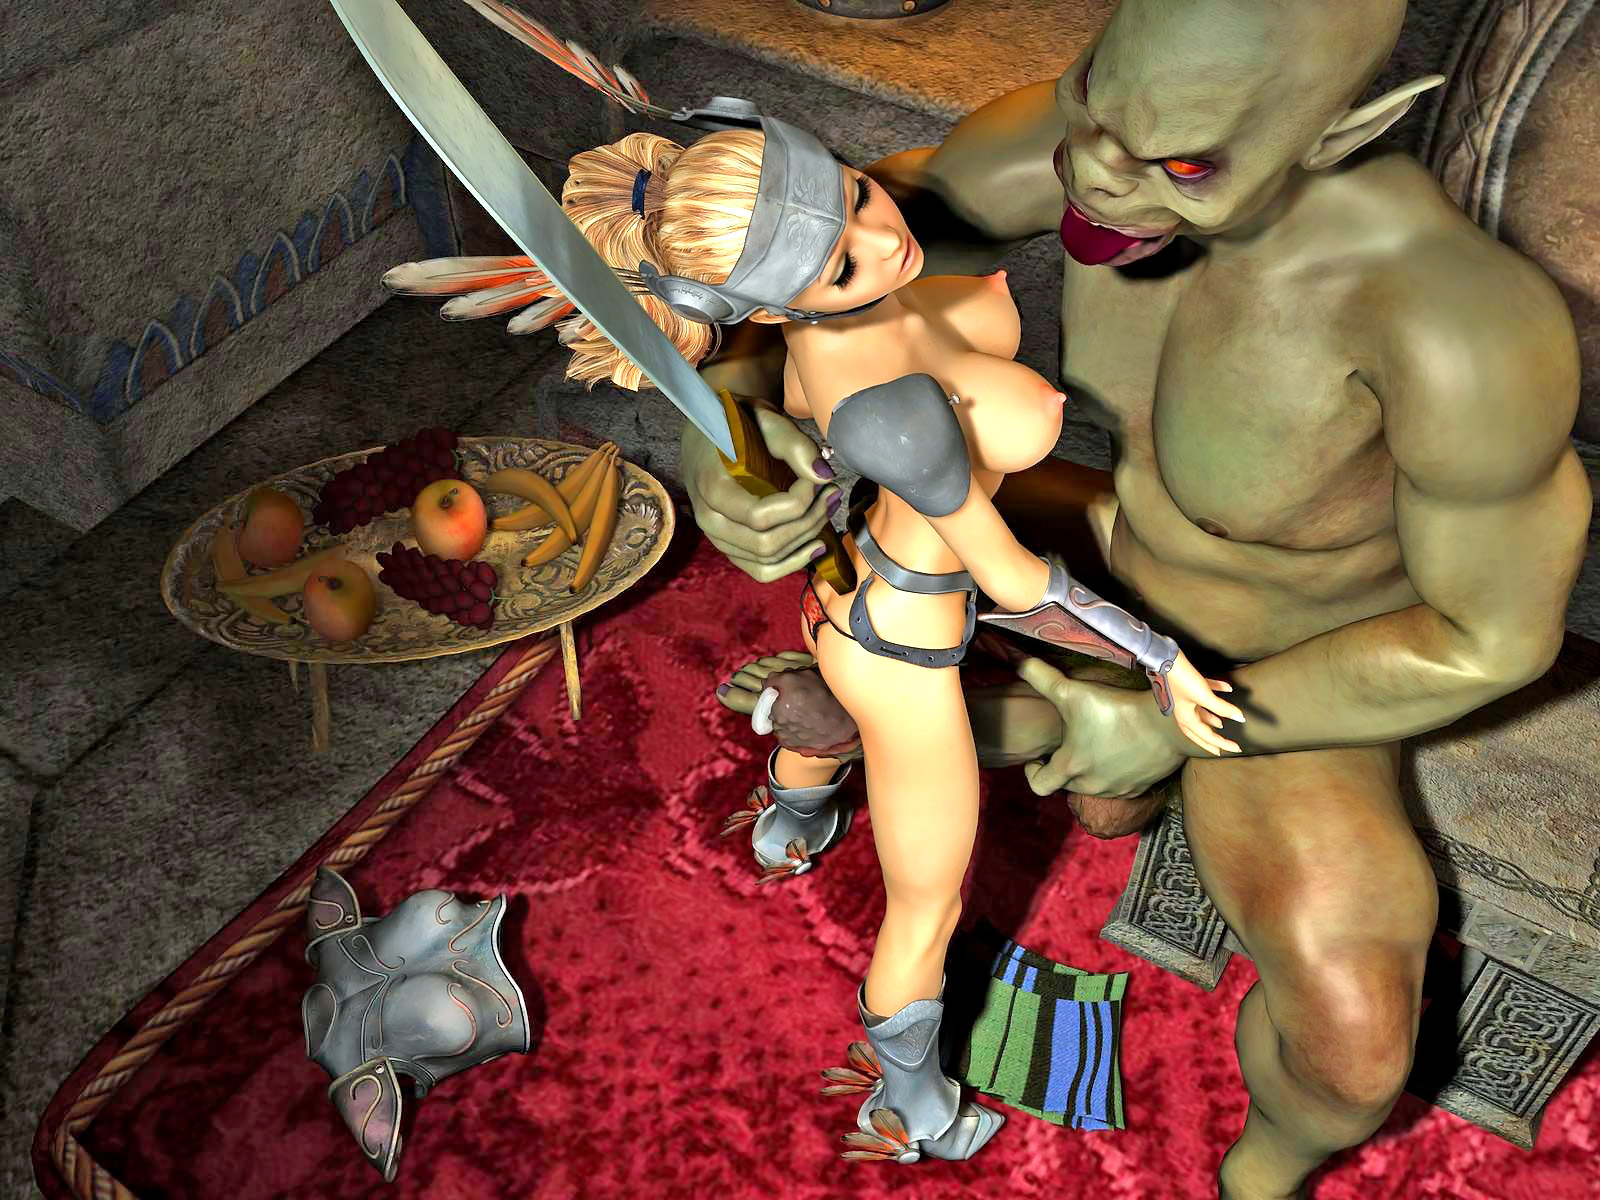 Orc porn toon galleries nsfw gallery